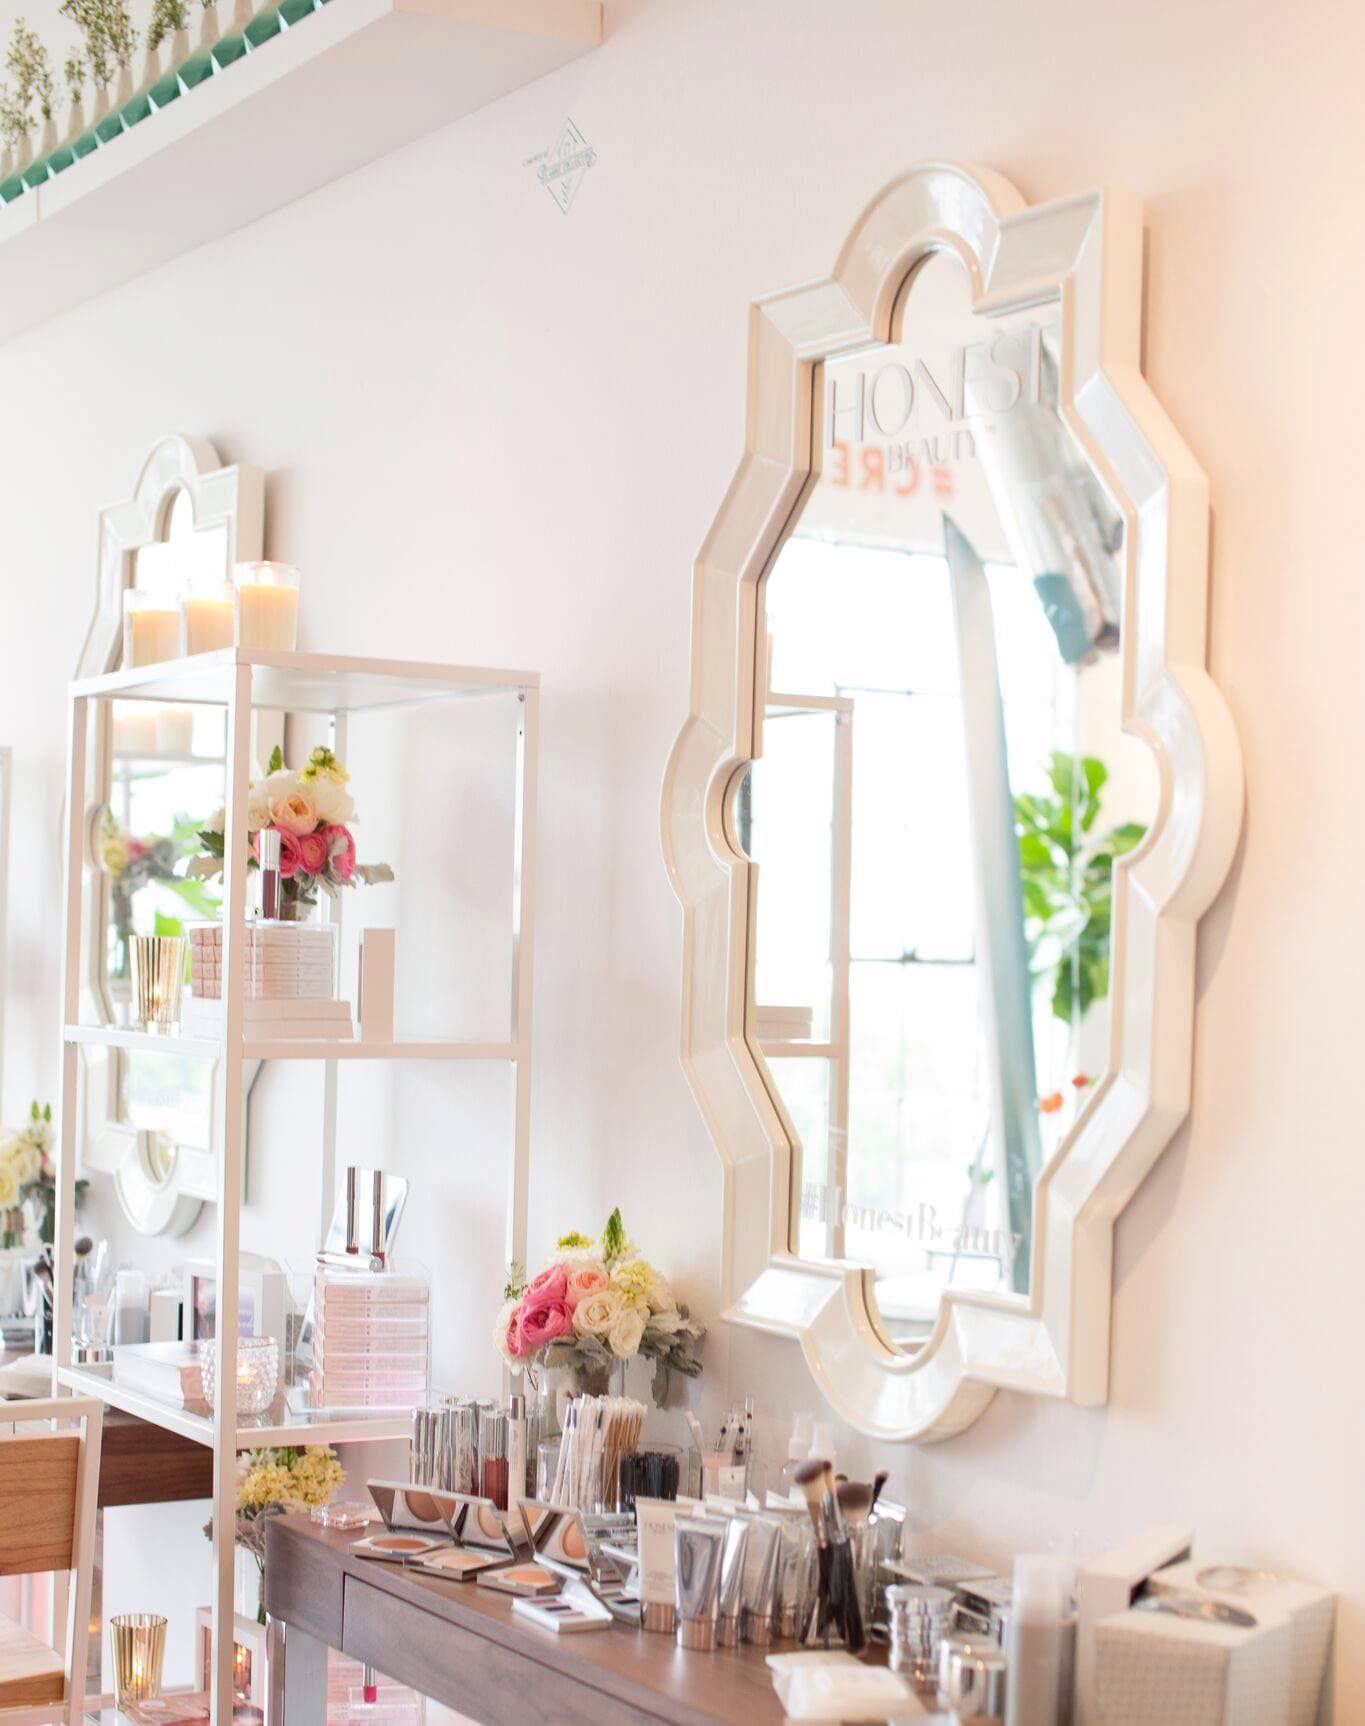 Honest Beauty display at Create + Cultivate Los Angeles 2016| Click through to read a full onference recap + review | Beauty and Style Blogger Ashley Brooke Nicholas